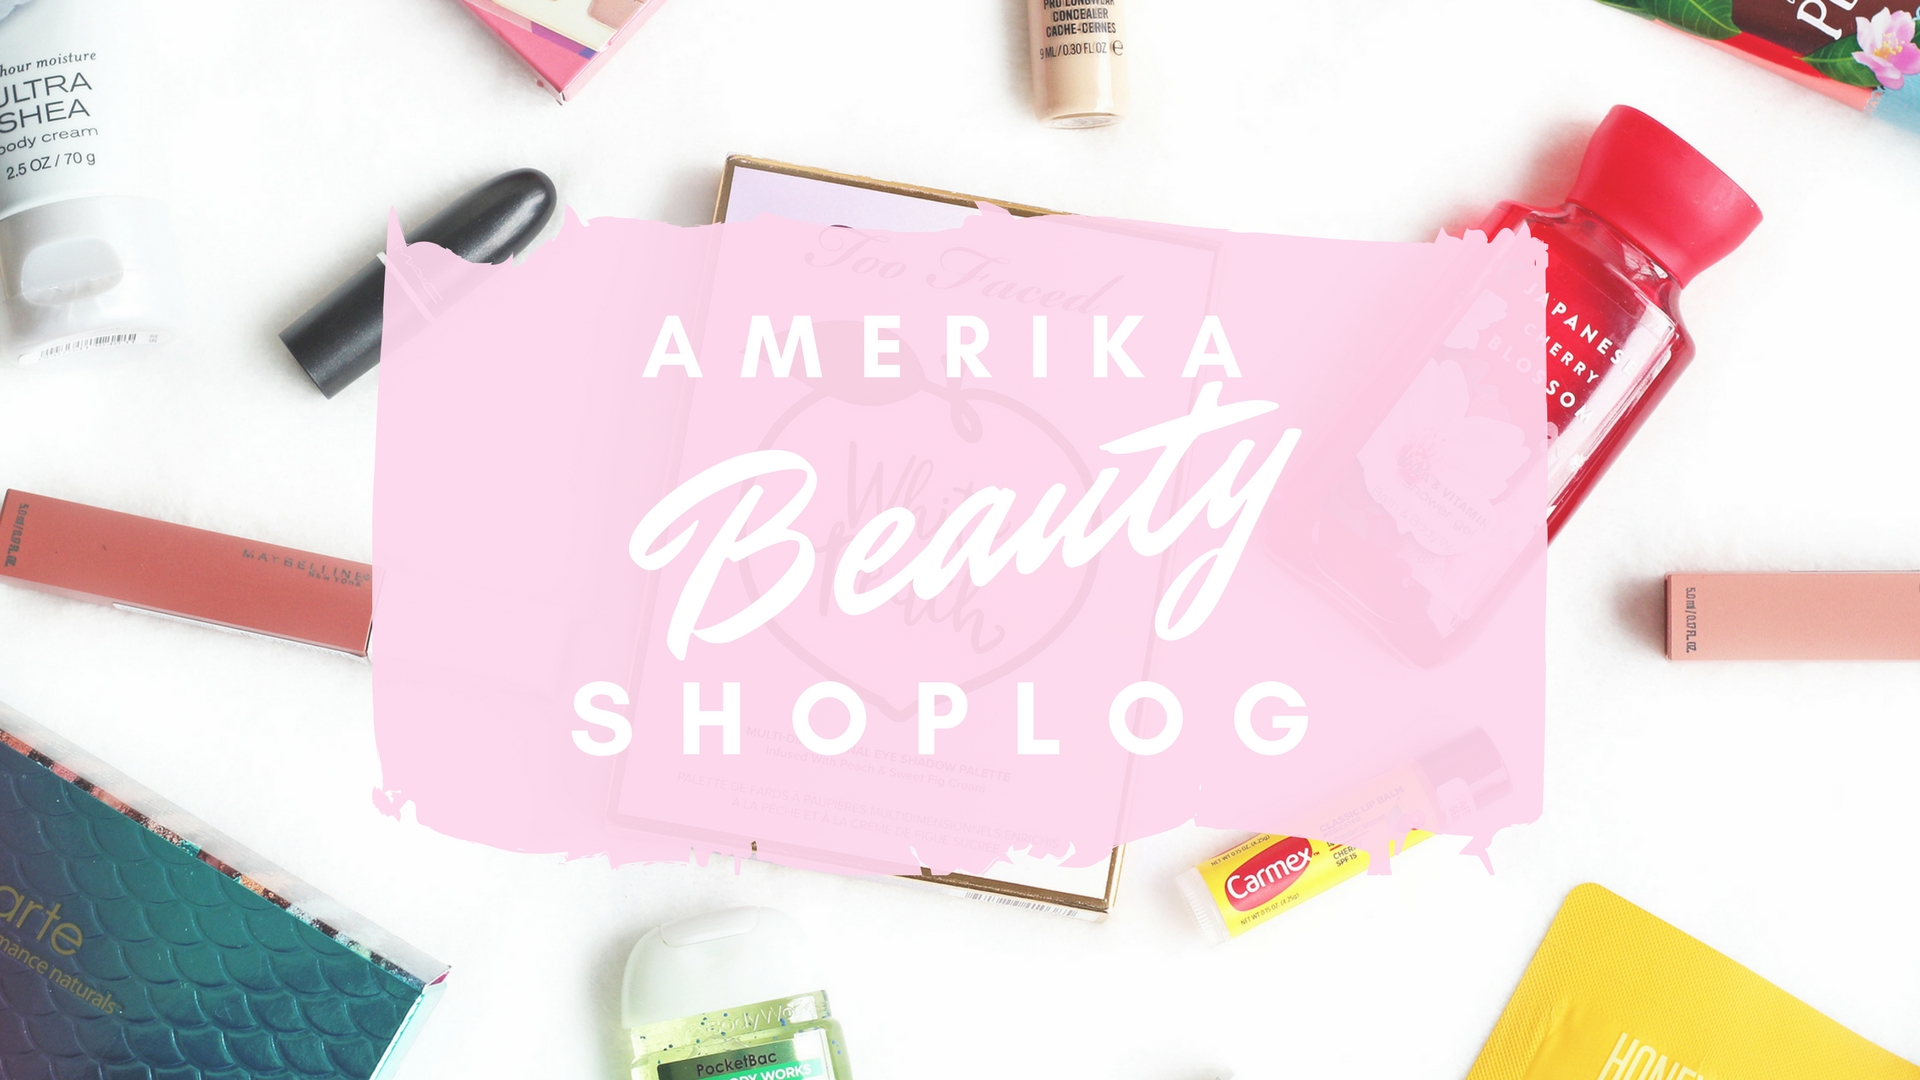 amerika beauty shoplog 2018